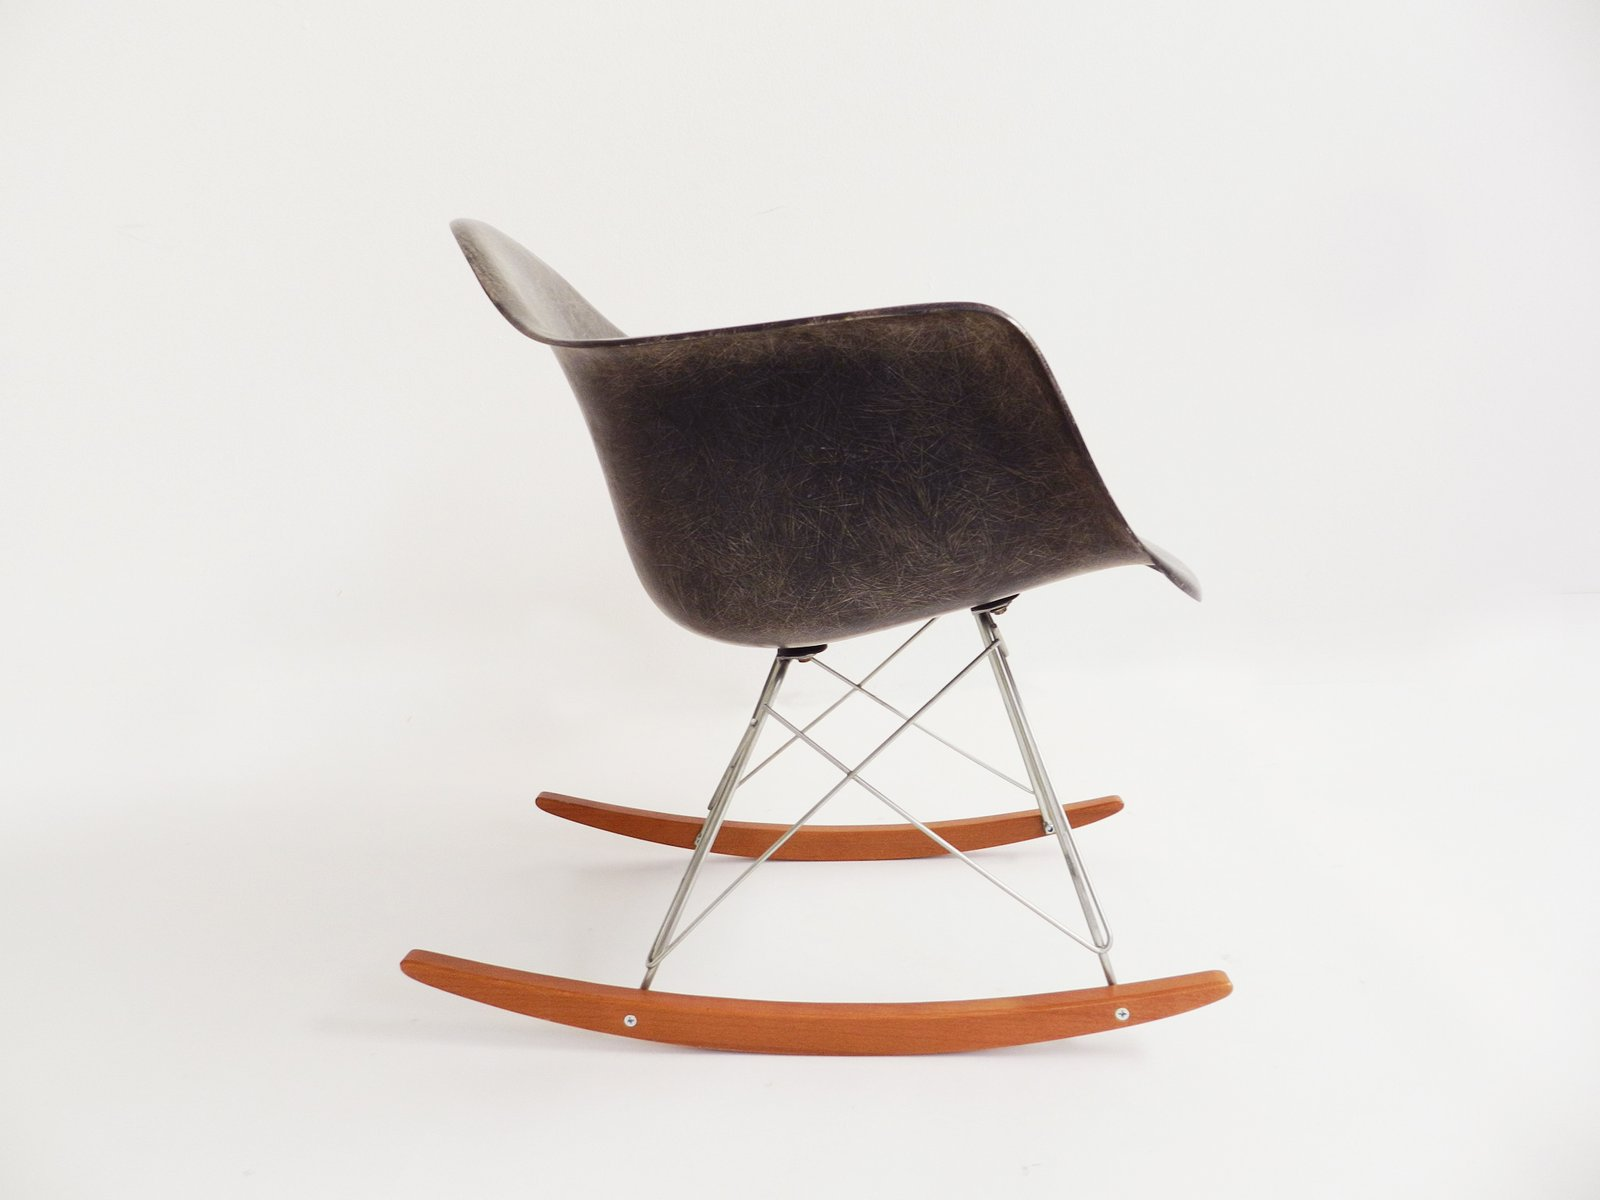 vintage rar rocking chair by charles ray eames for. Black Bedroom Furniture Sets. Home Design Ideas